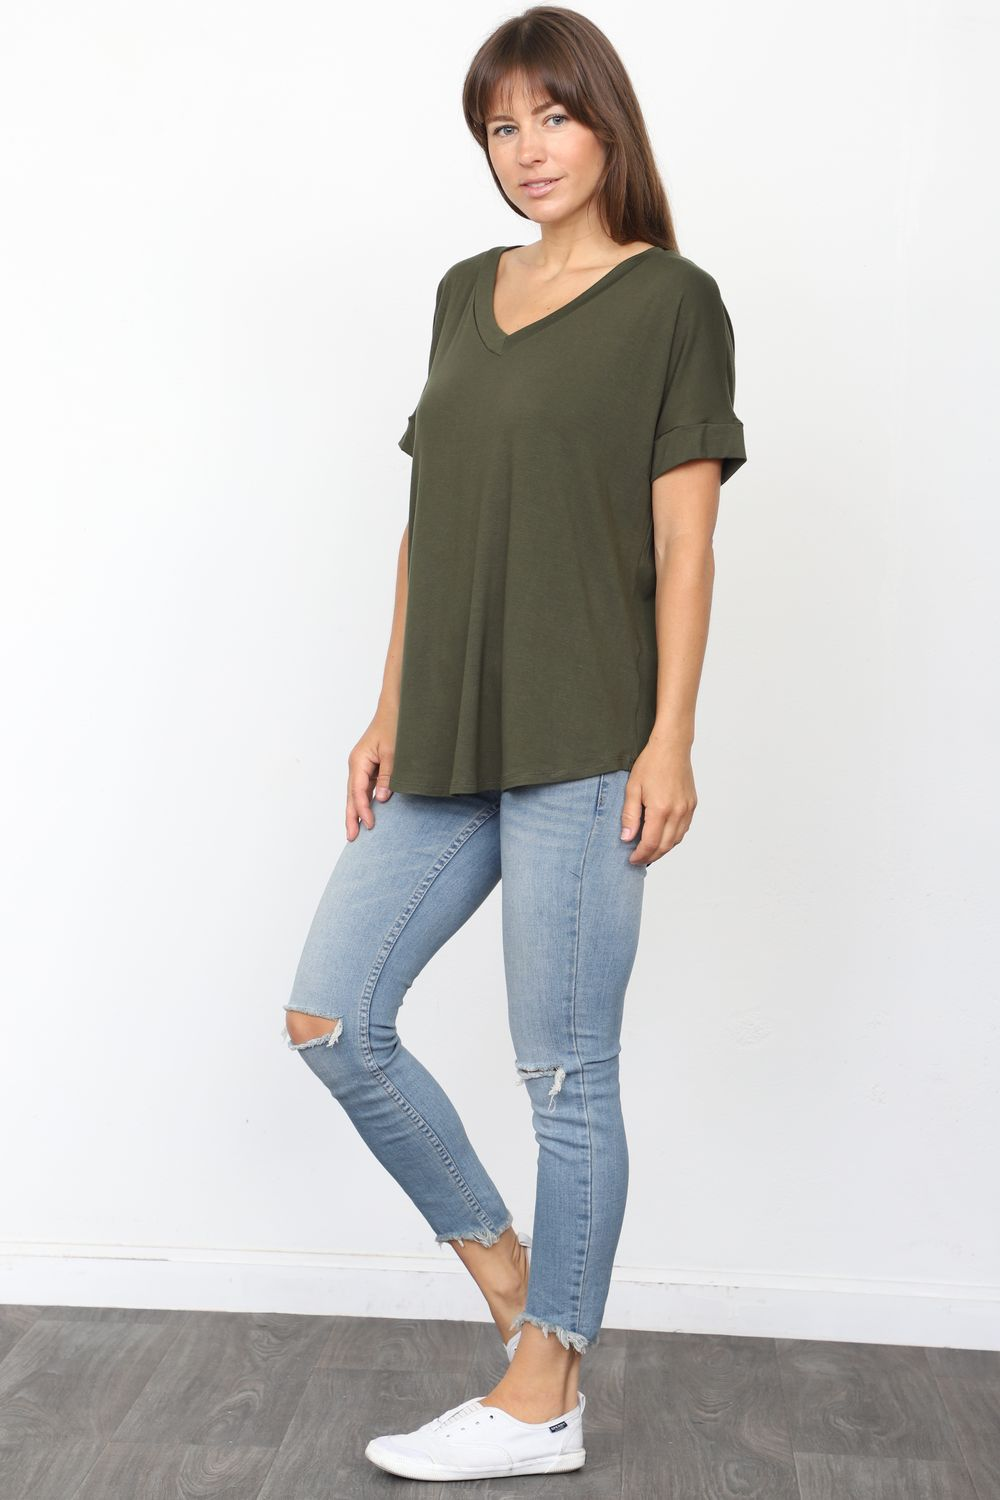 Solid Olive V-Neck Rolled Cuff Sleeve Top